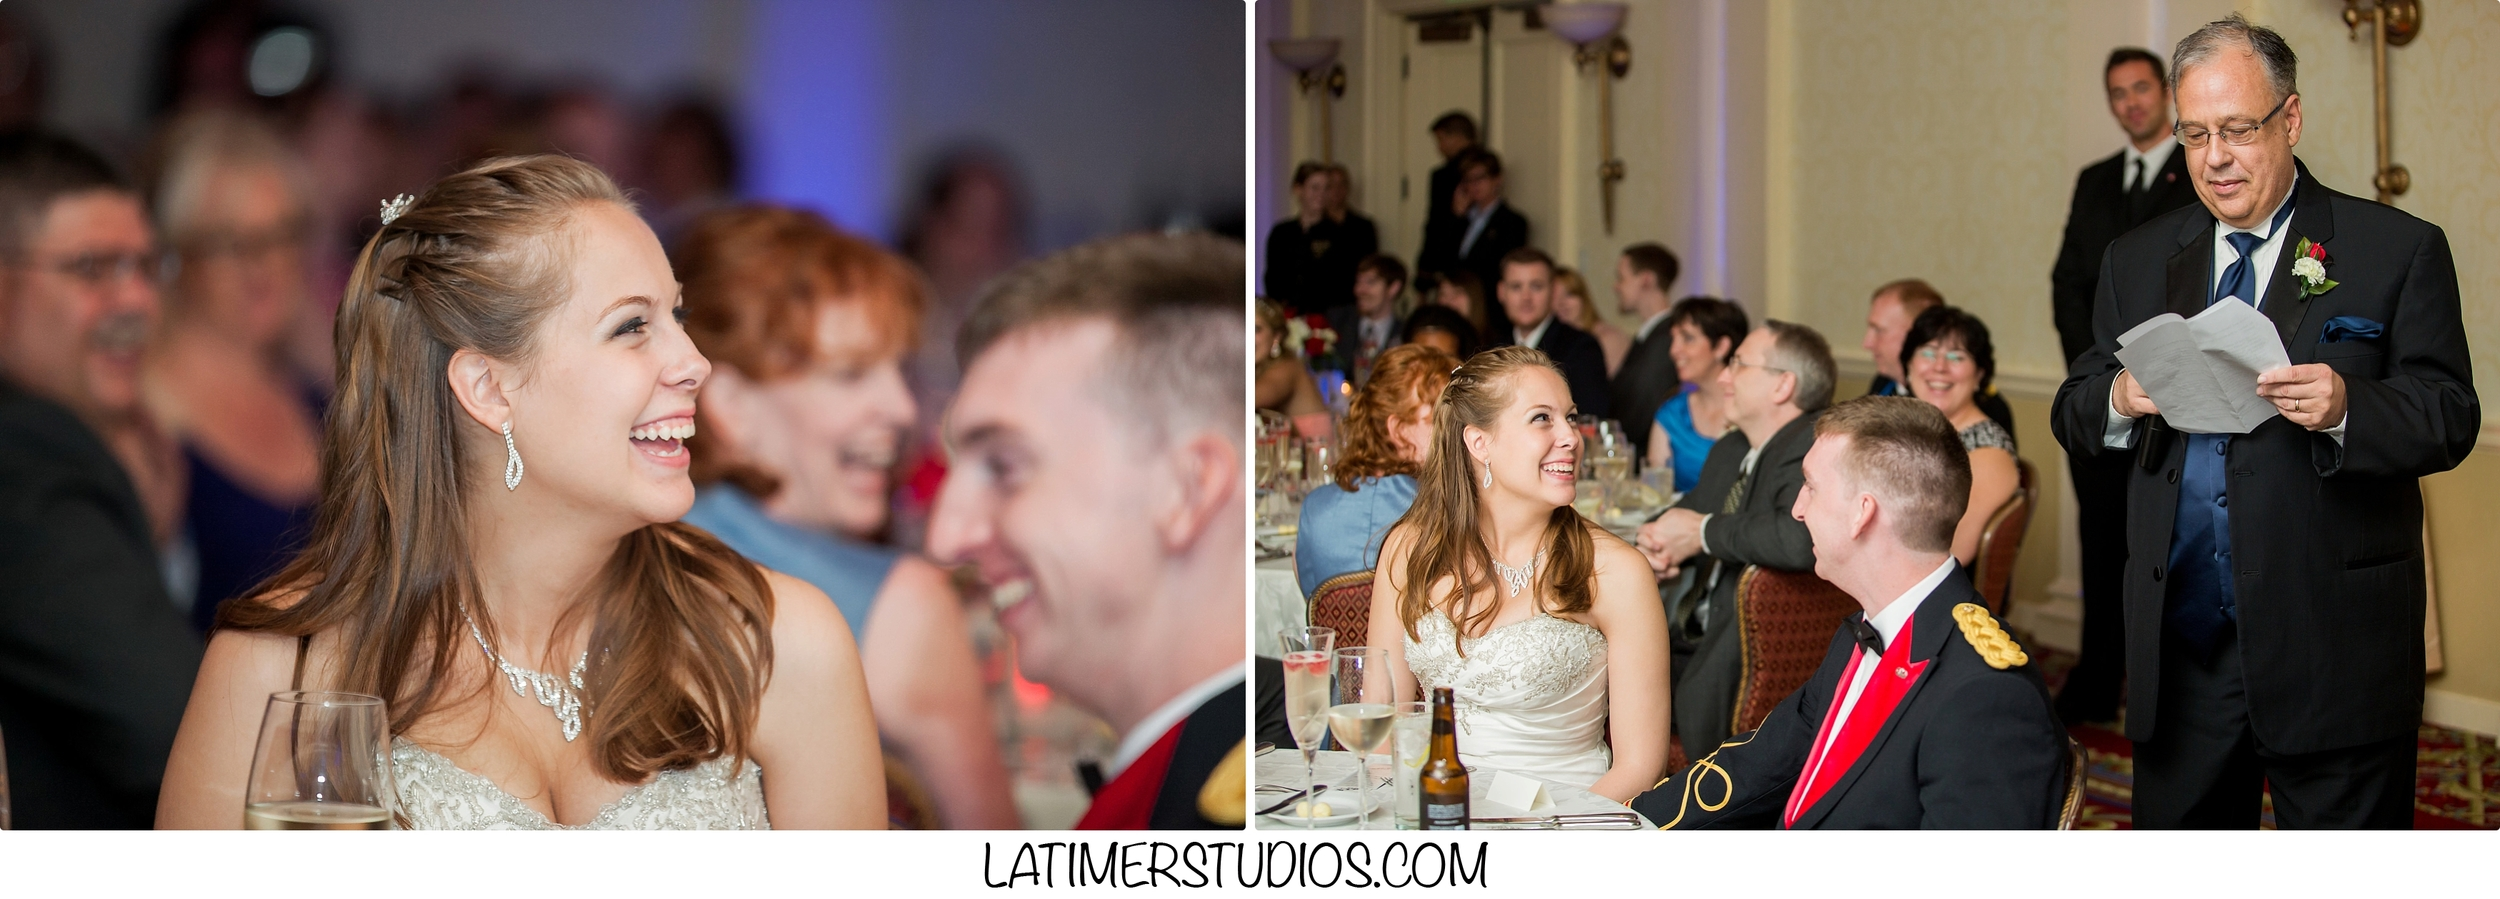 Latimer Studios Photography capturing wedding toast at Wentworth by the Sea in Rye NH